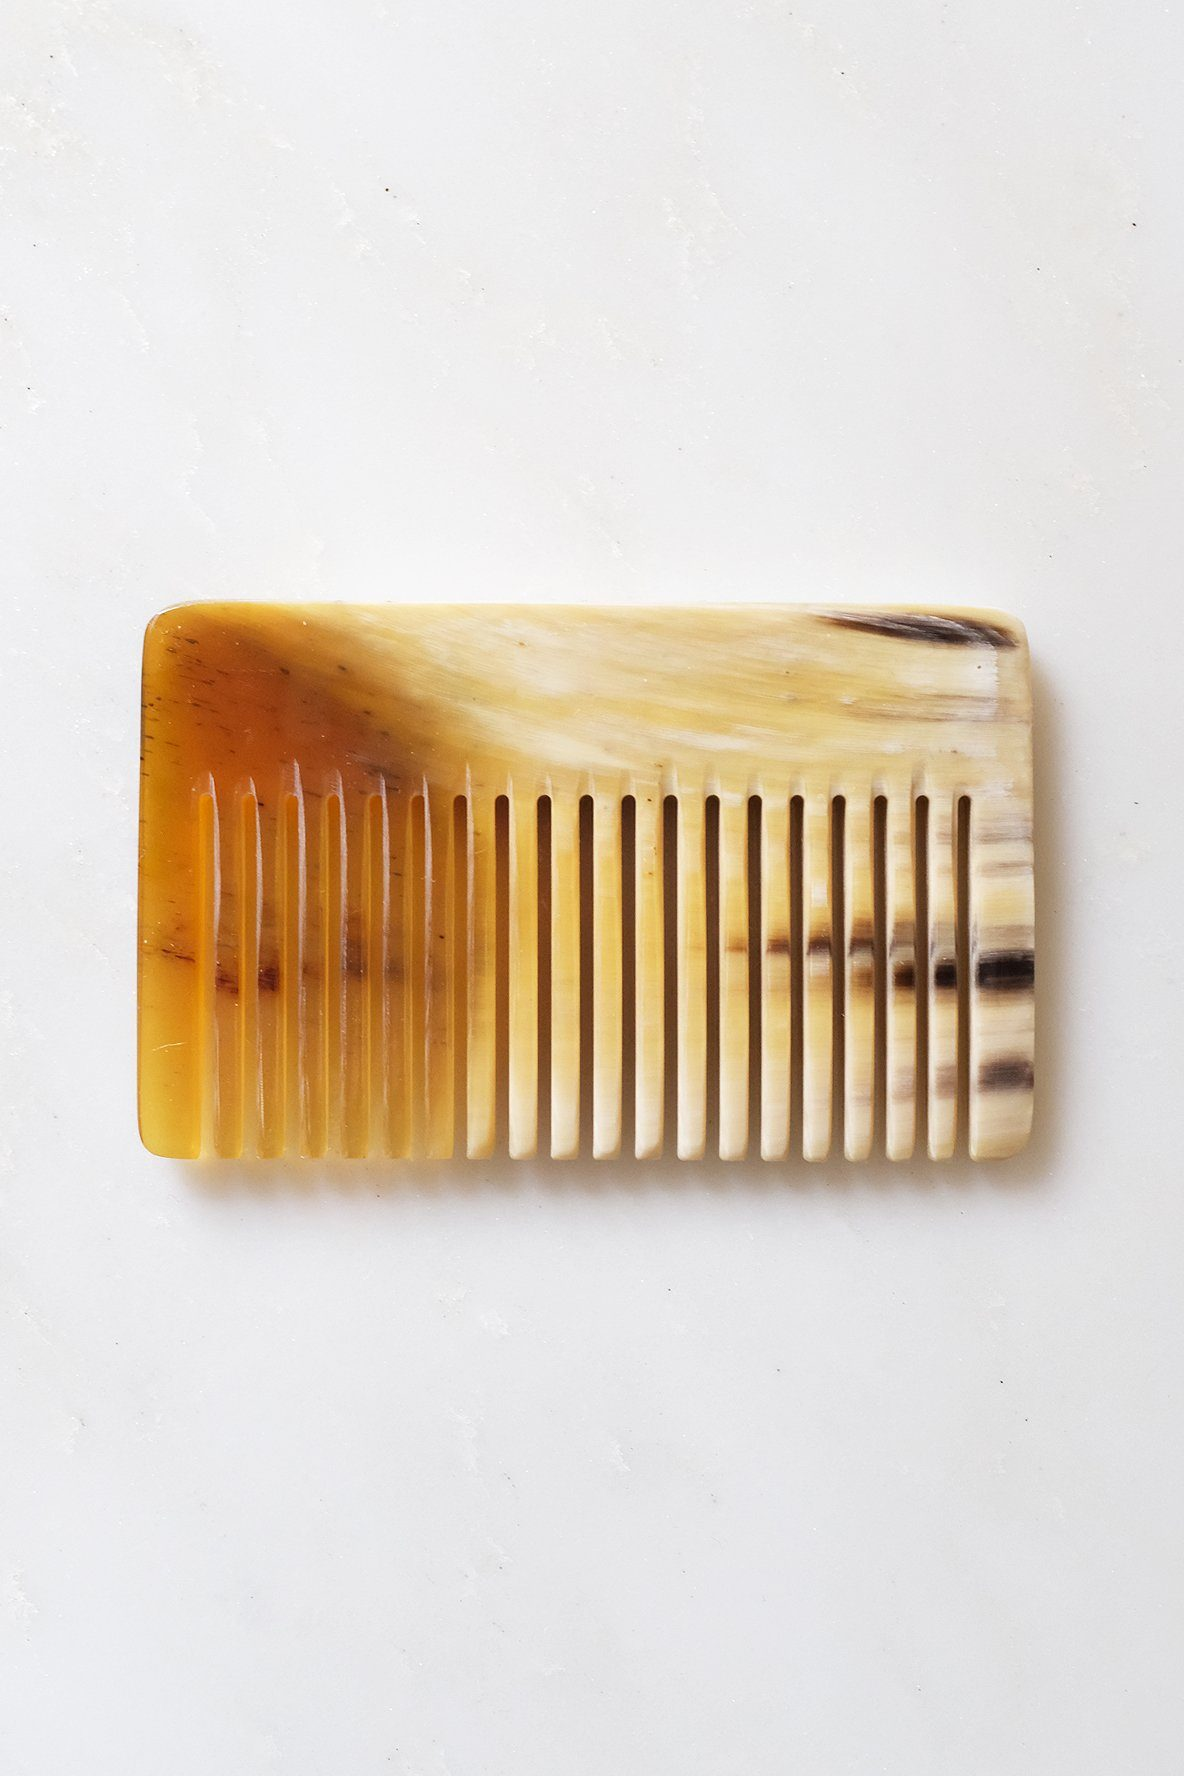 Chai Buffalo Horn Pocket-Sized Hair / Beard Comb - Handcrafted & Unique Buffalo Horn Jewelry